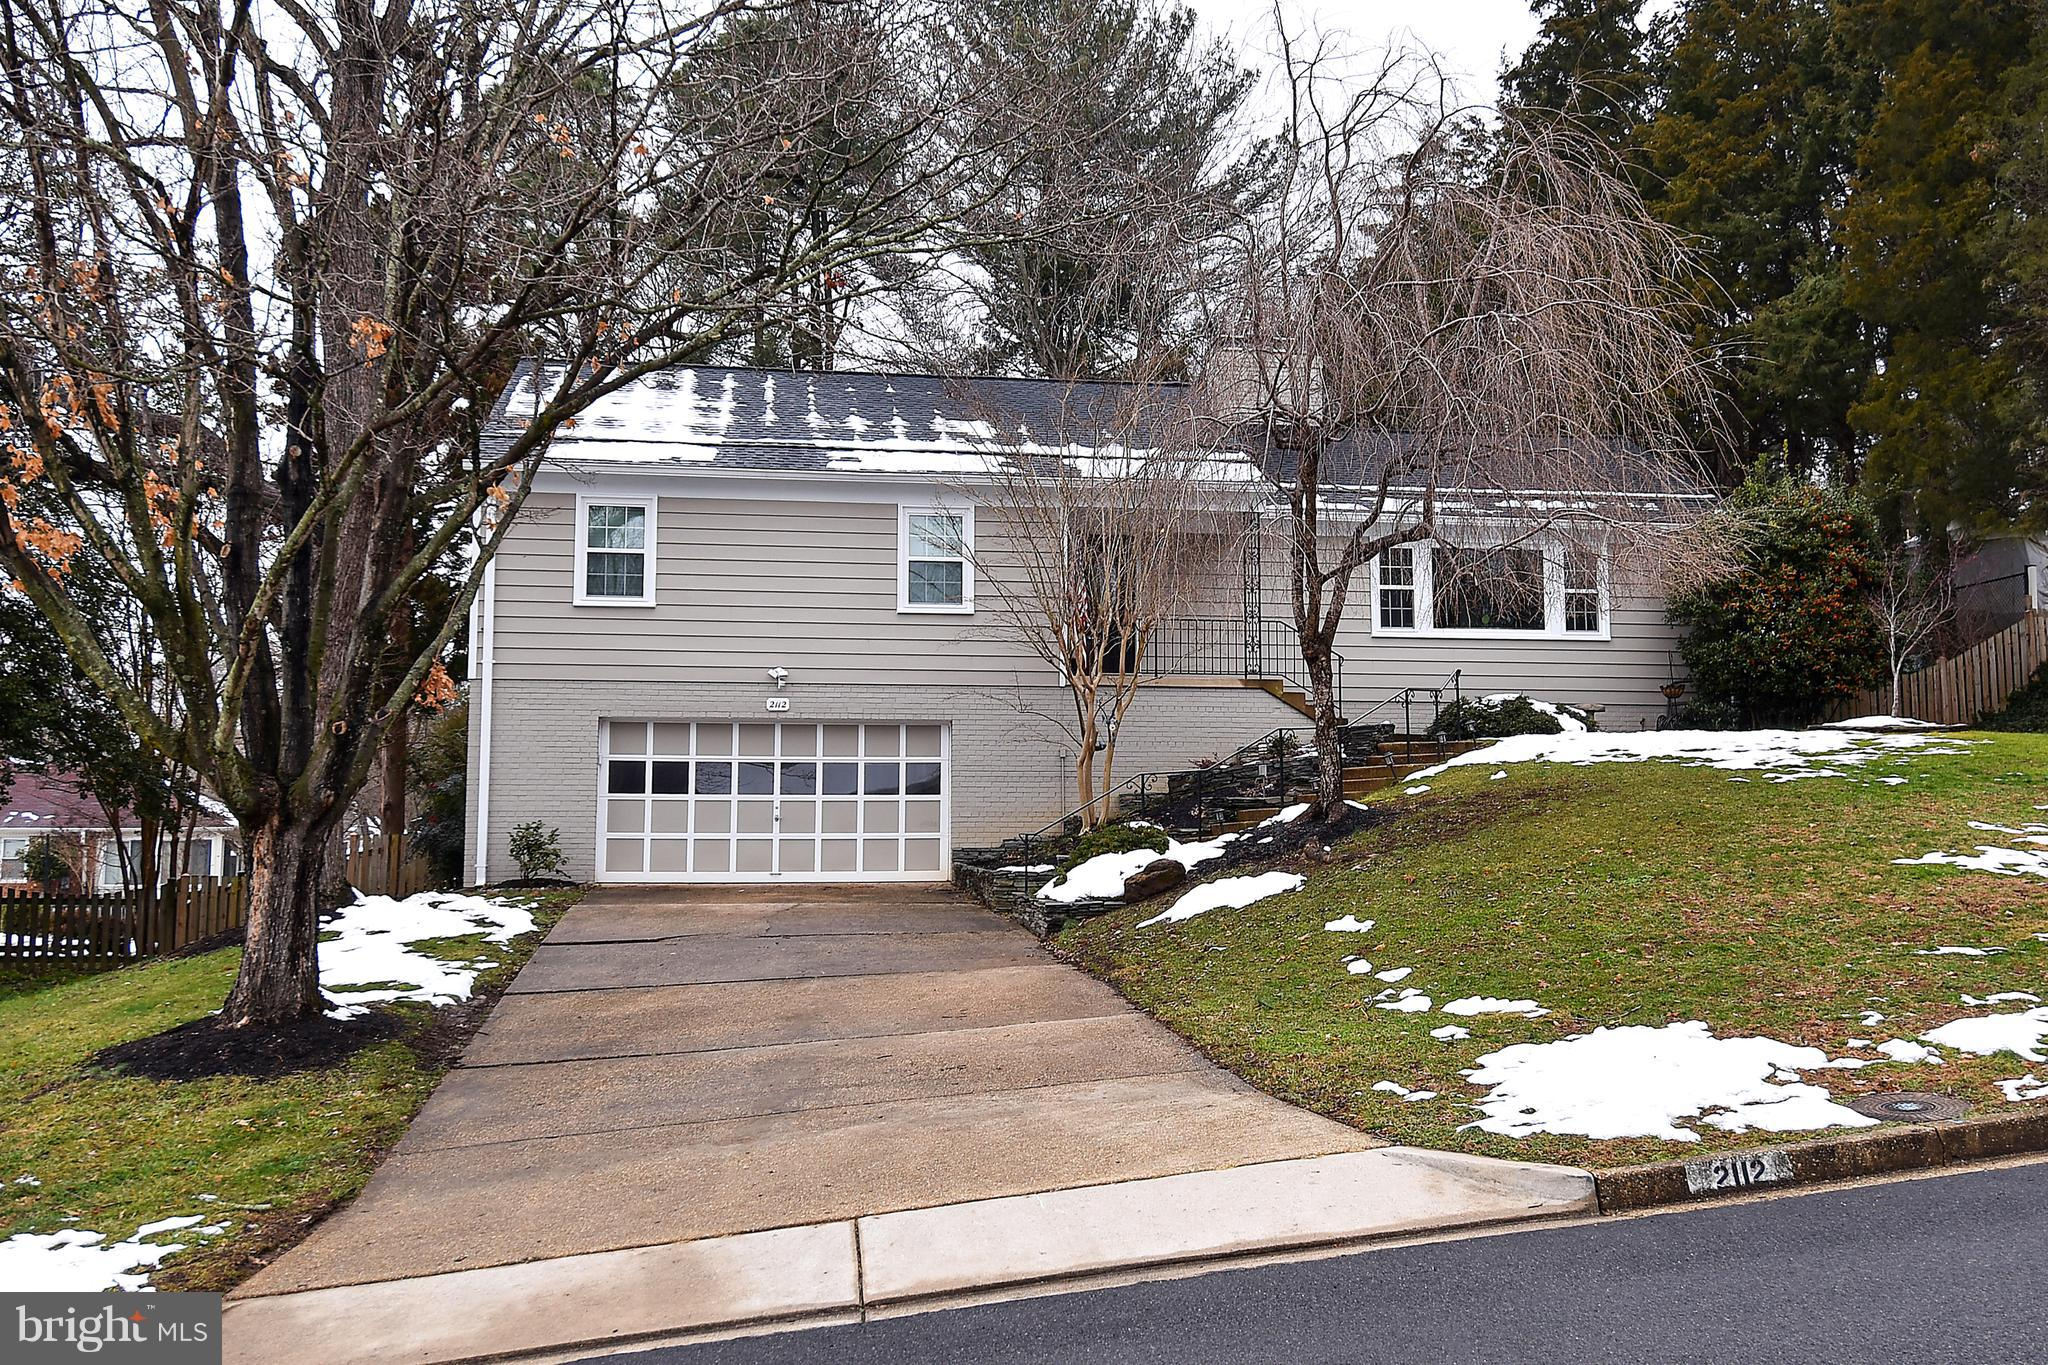 Come stay at this exceptionally updated & worry-free home. Approx 2900 Sq Ft of space (1800 above & 1100 below grade) 4 bedrooms; 3 full baths; dining room, large living rm; huge kitchen.  2nd large living area in basement along w/huge utility room including frig  & ample storage. Main level hardwood and lower level vinyl waterproof flooring replaced 2018. New triple pane windows. Verizon FIOS ready. Easy home to clean.  Dogs are welcome with landlord approval. You will find the side-walk neighborhood a joy to spend long walks & you will meet friendly neighbors as well.  Elementary school is in walking distance. Garbage and recycling is included at no charge. Spectacular updated kitchen w/huge island.  New appliances in 2016. Roof and decking replaced in 2018. Triple pane windows in 2018. Basement remodeled in 2018. updated master & 2nd bath in 2016. Updated lighting 2016 - 2018. Energy Efficient exterior doors 2018. A/C (2016), gas furnace 2018, electrical panel 2018, exterior paint 2017, storage shed 2017, cable and internet connections throughout 2016, and a lot of landscaping that is easy to maintain but fun to enjoy.